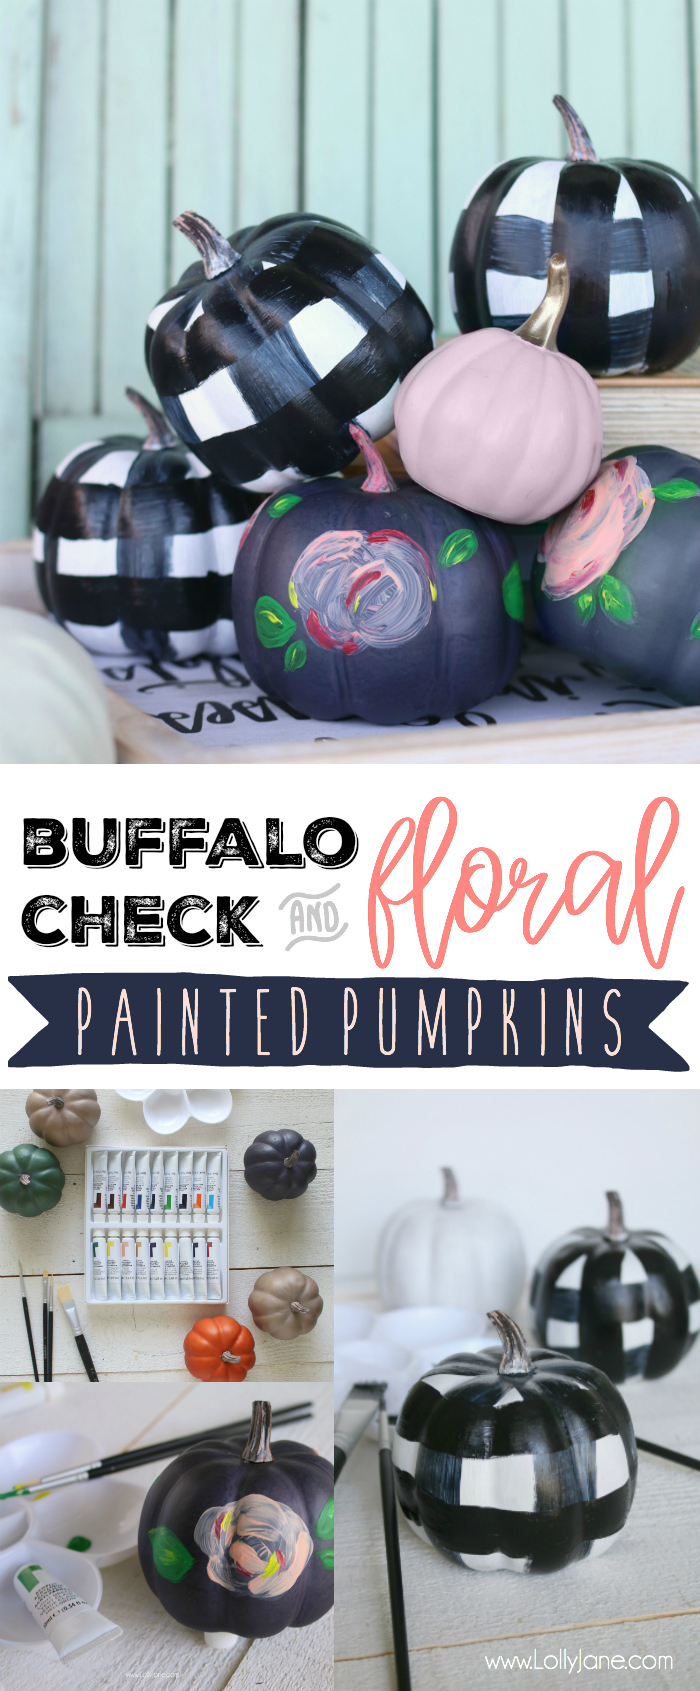 Buffalo Check + Floral Painted Pumpkins DIY, so EASY!!! And cute!!!!